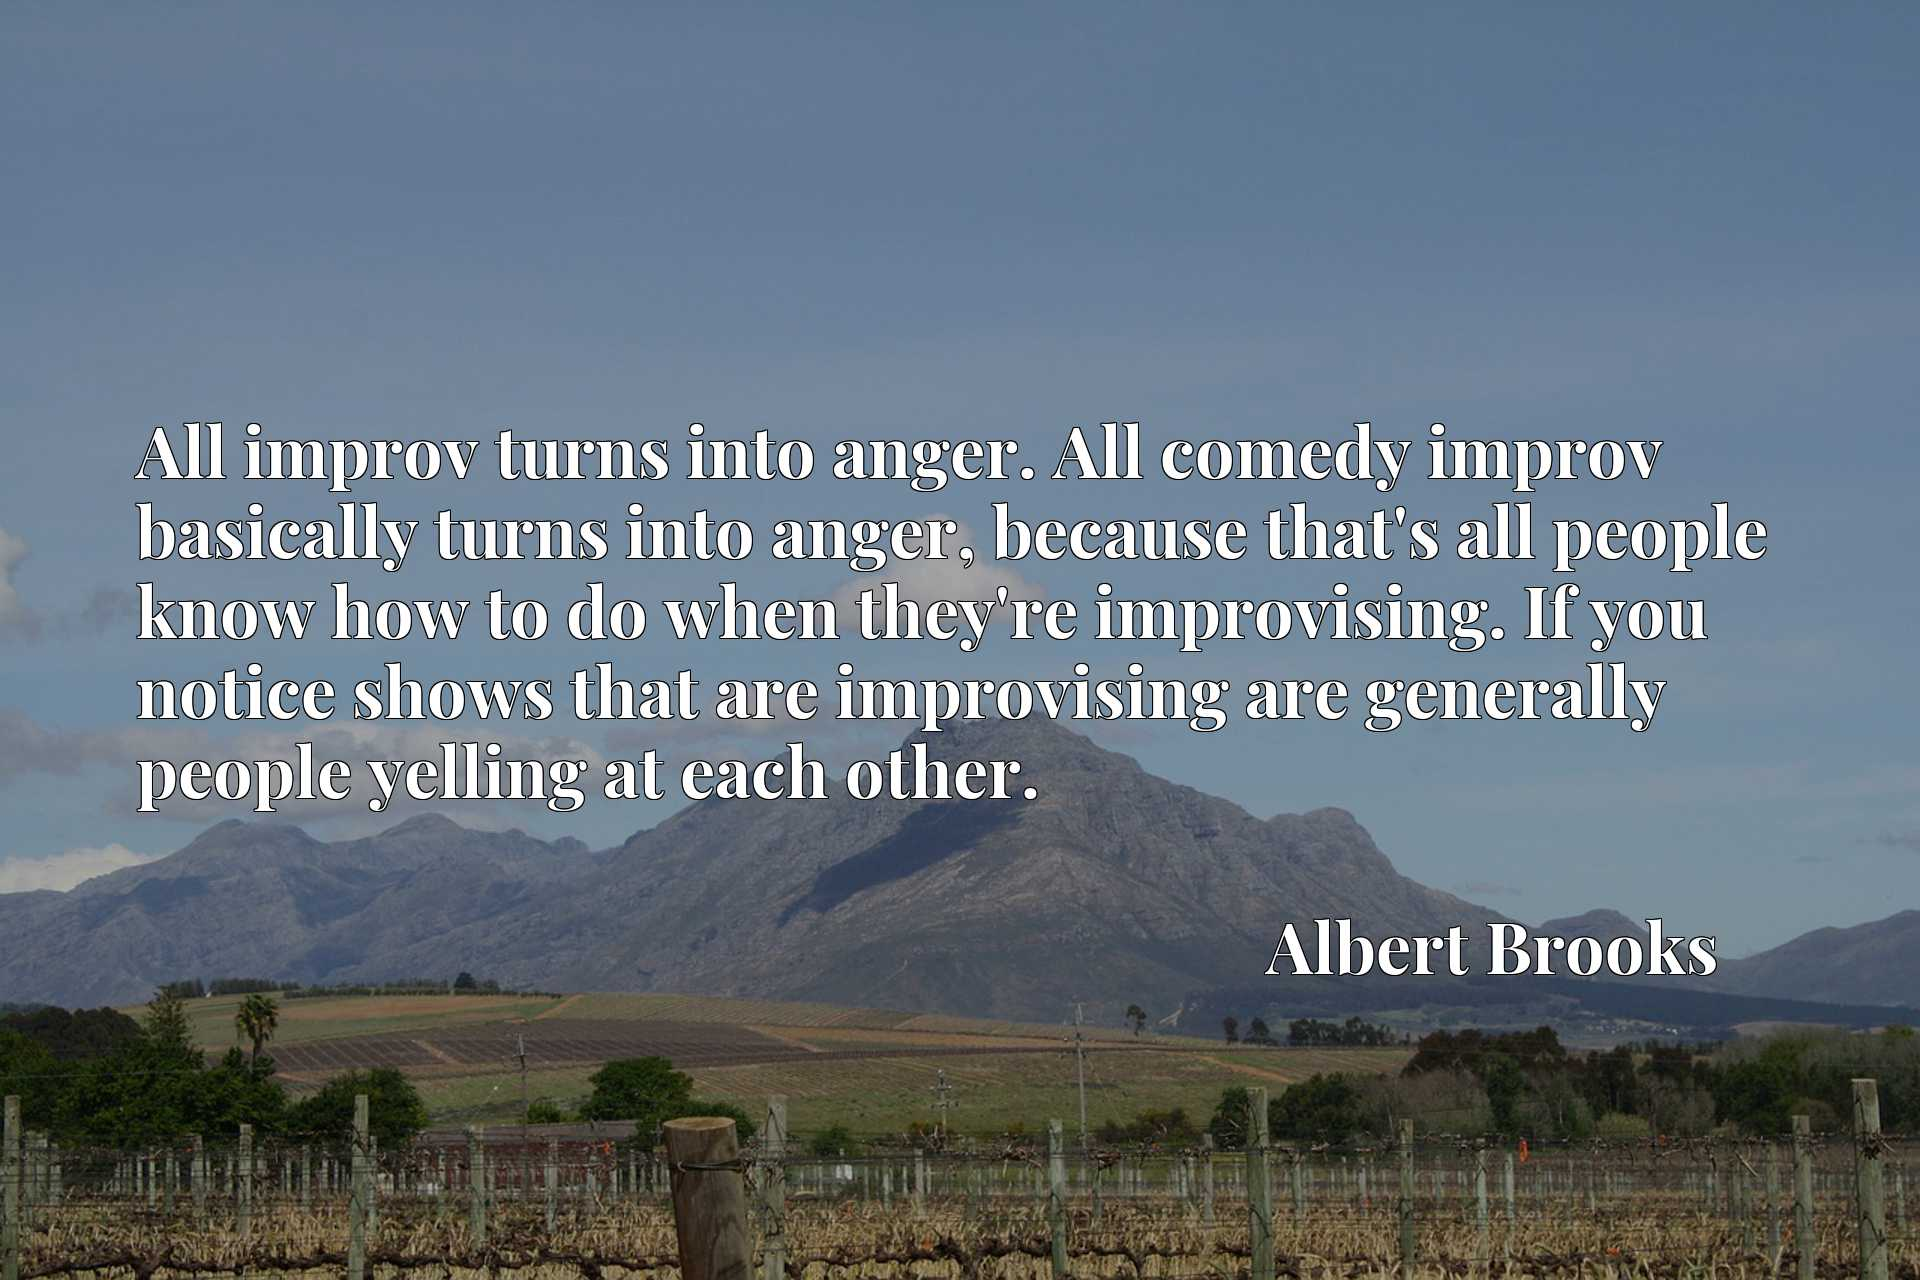 All improv turns into anger. All comedy improv basically turns into anger, because that's all people know how to do when they're improvising. If you notice shows that are improvising are generally people yelling at each other.